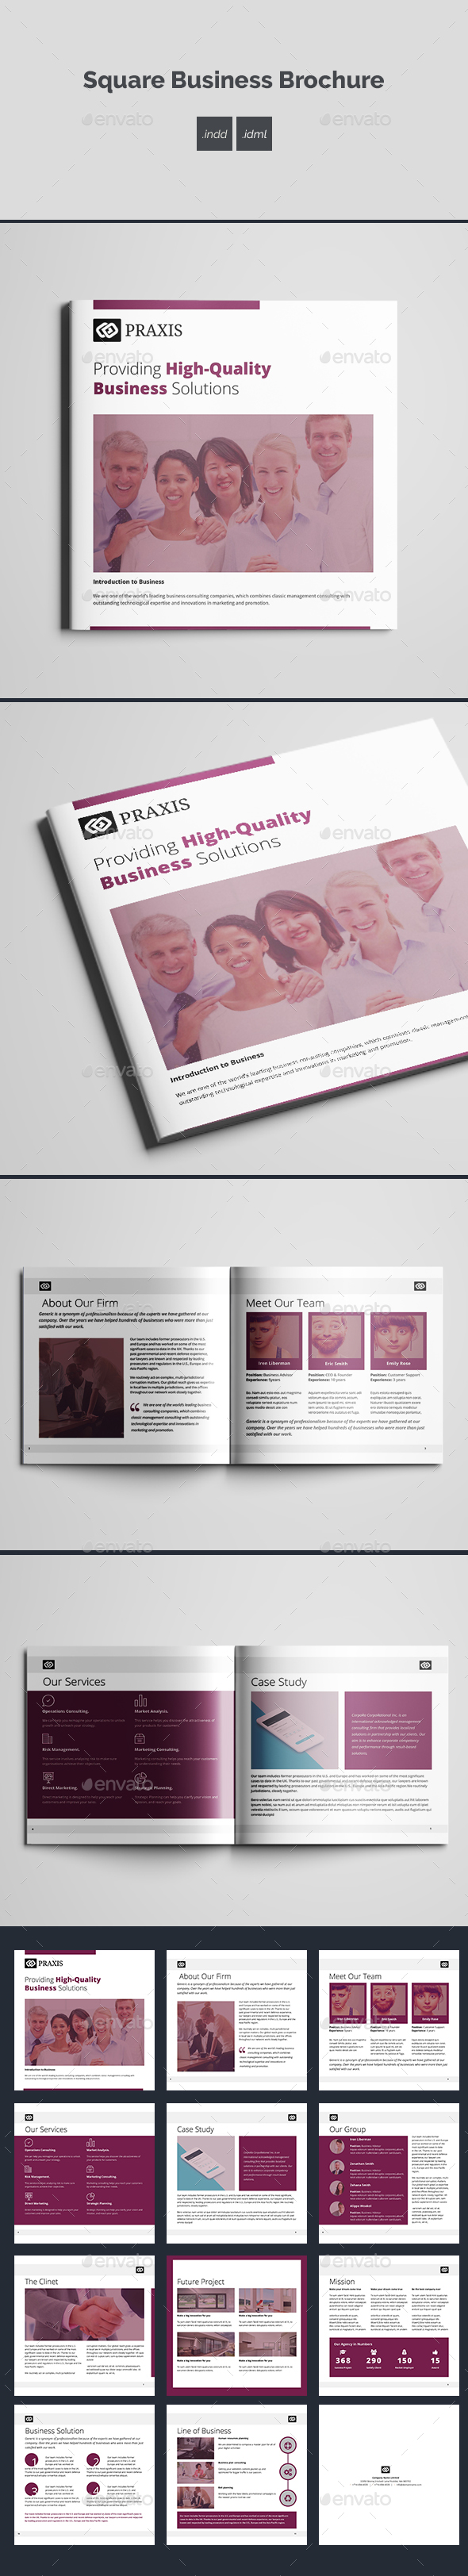 Square Business Brochure - Corporate Brochures